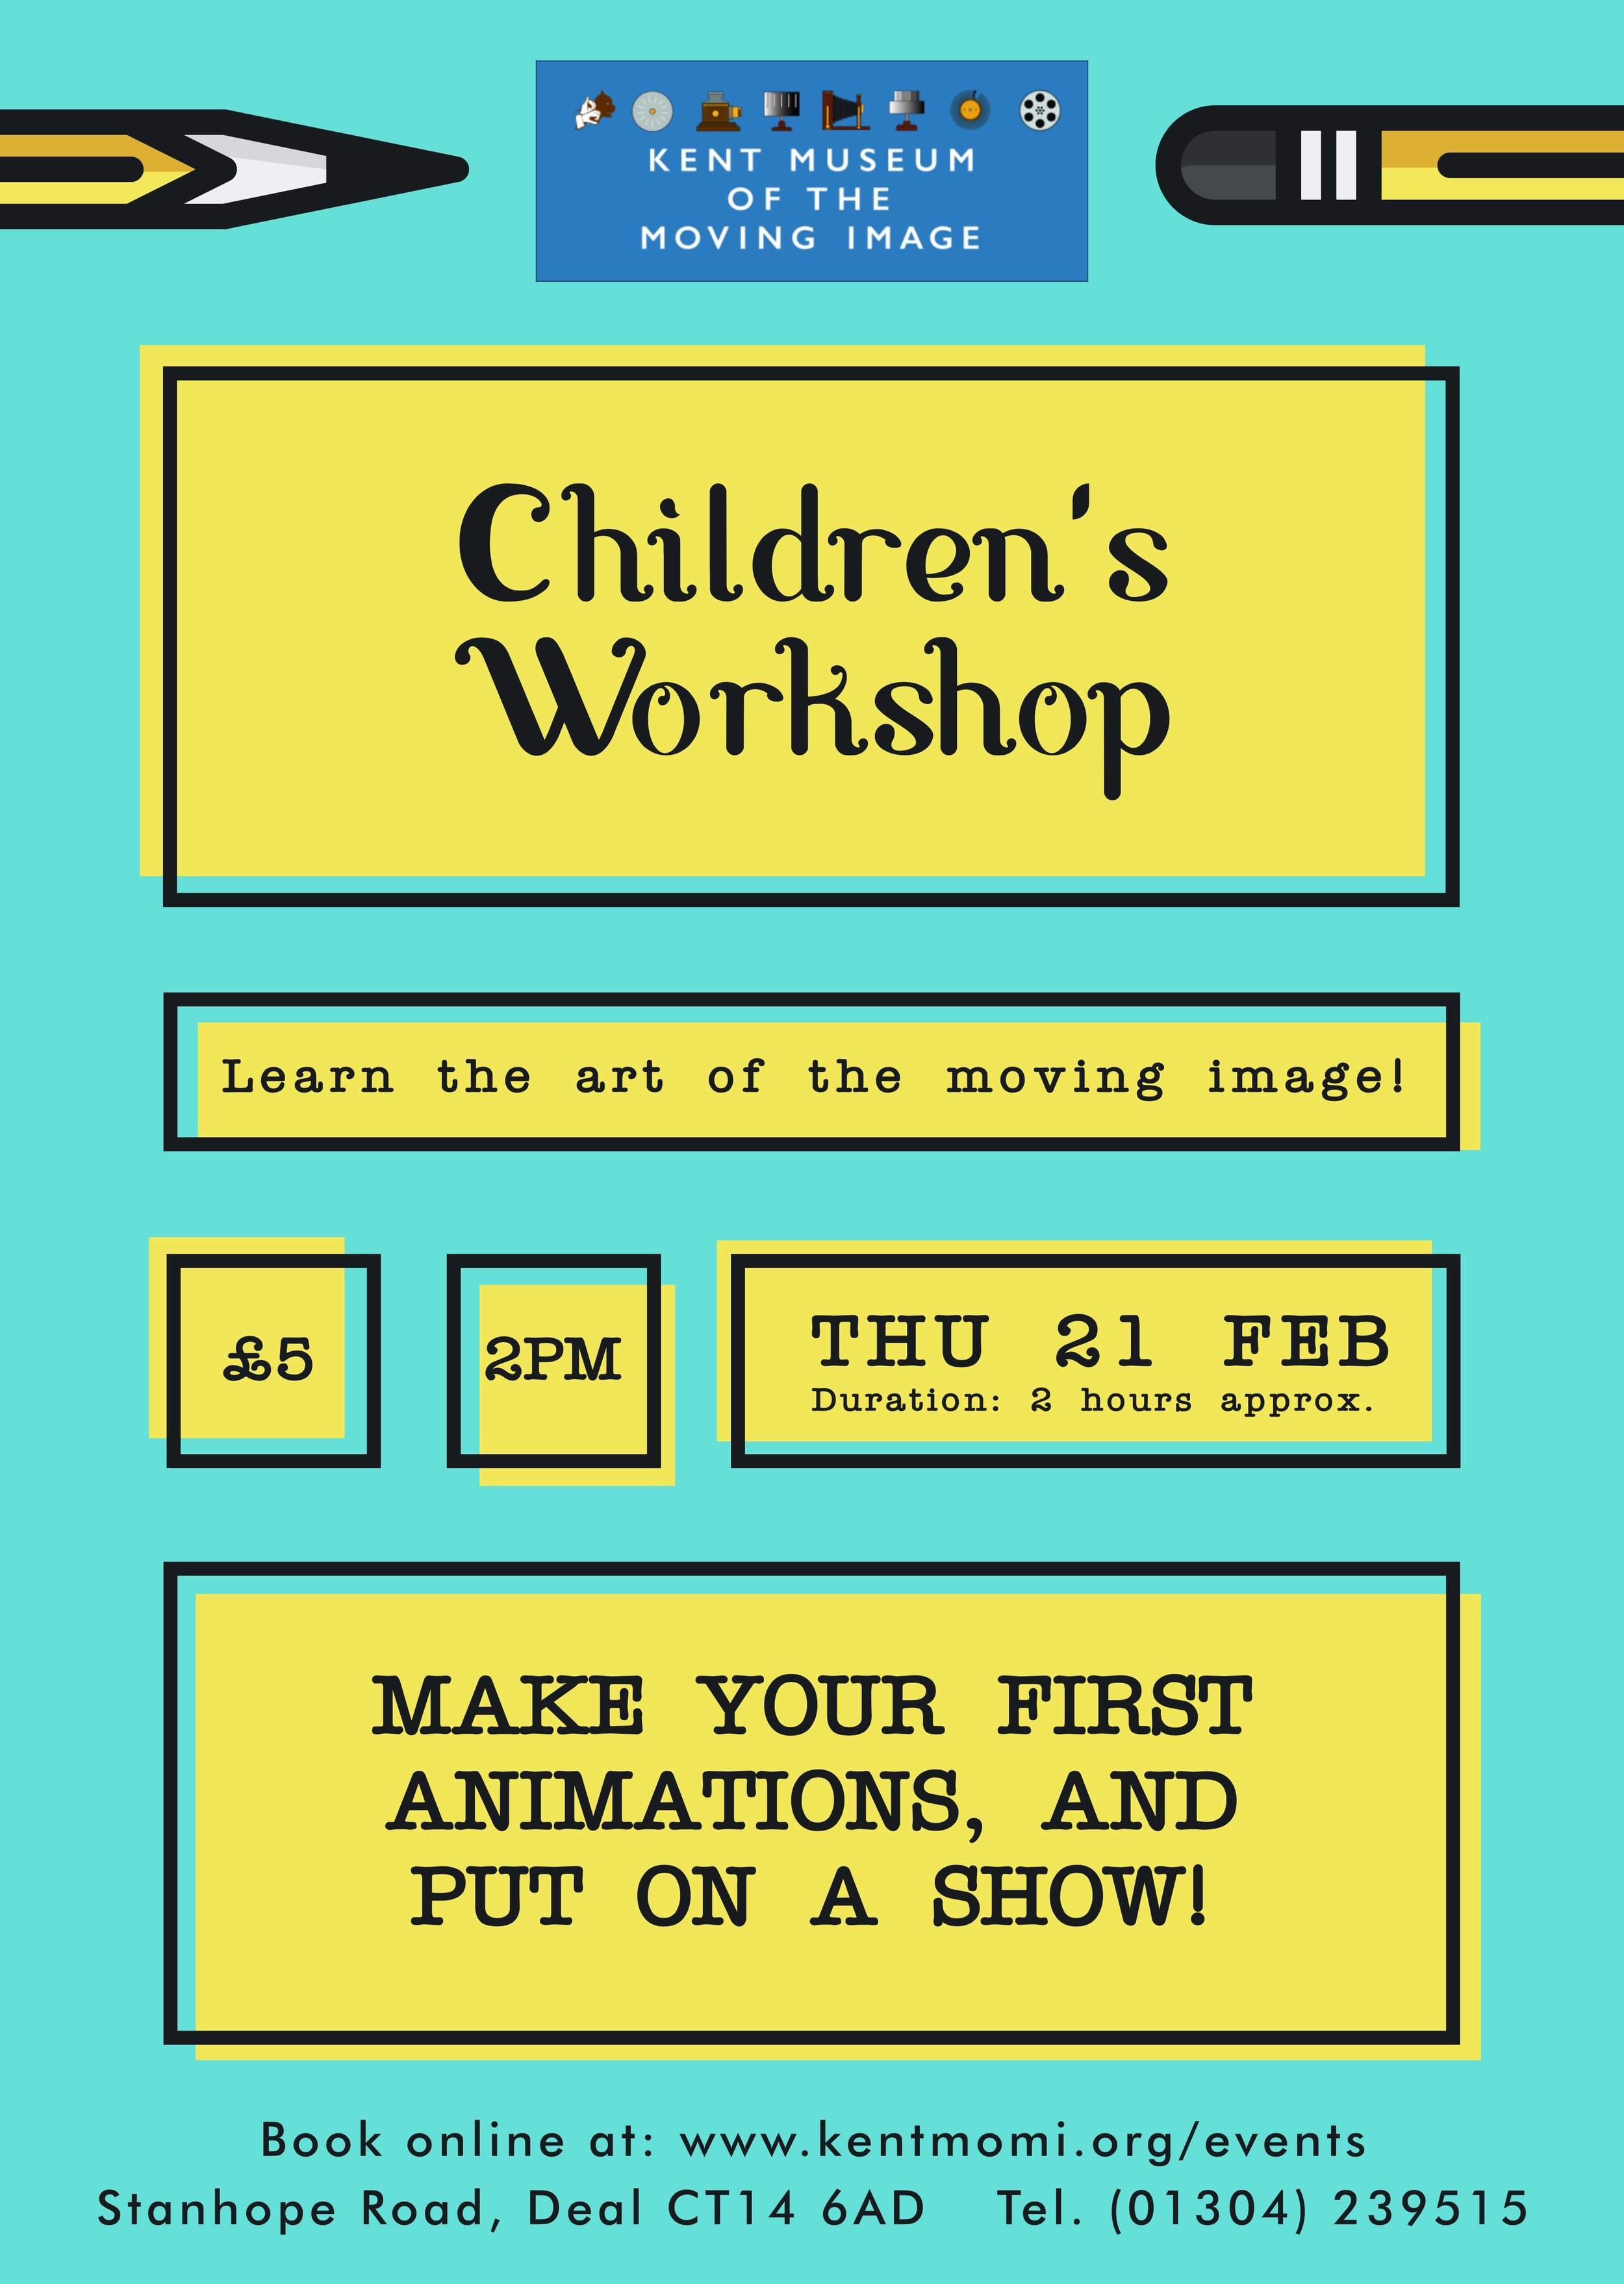 Children's Workshop Details Yet to be Confirmed Poster.jpg